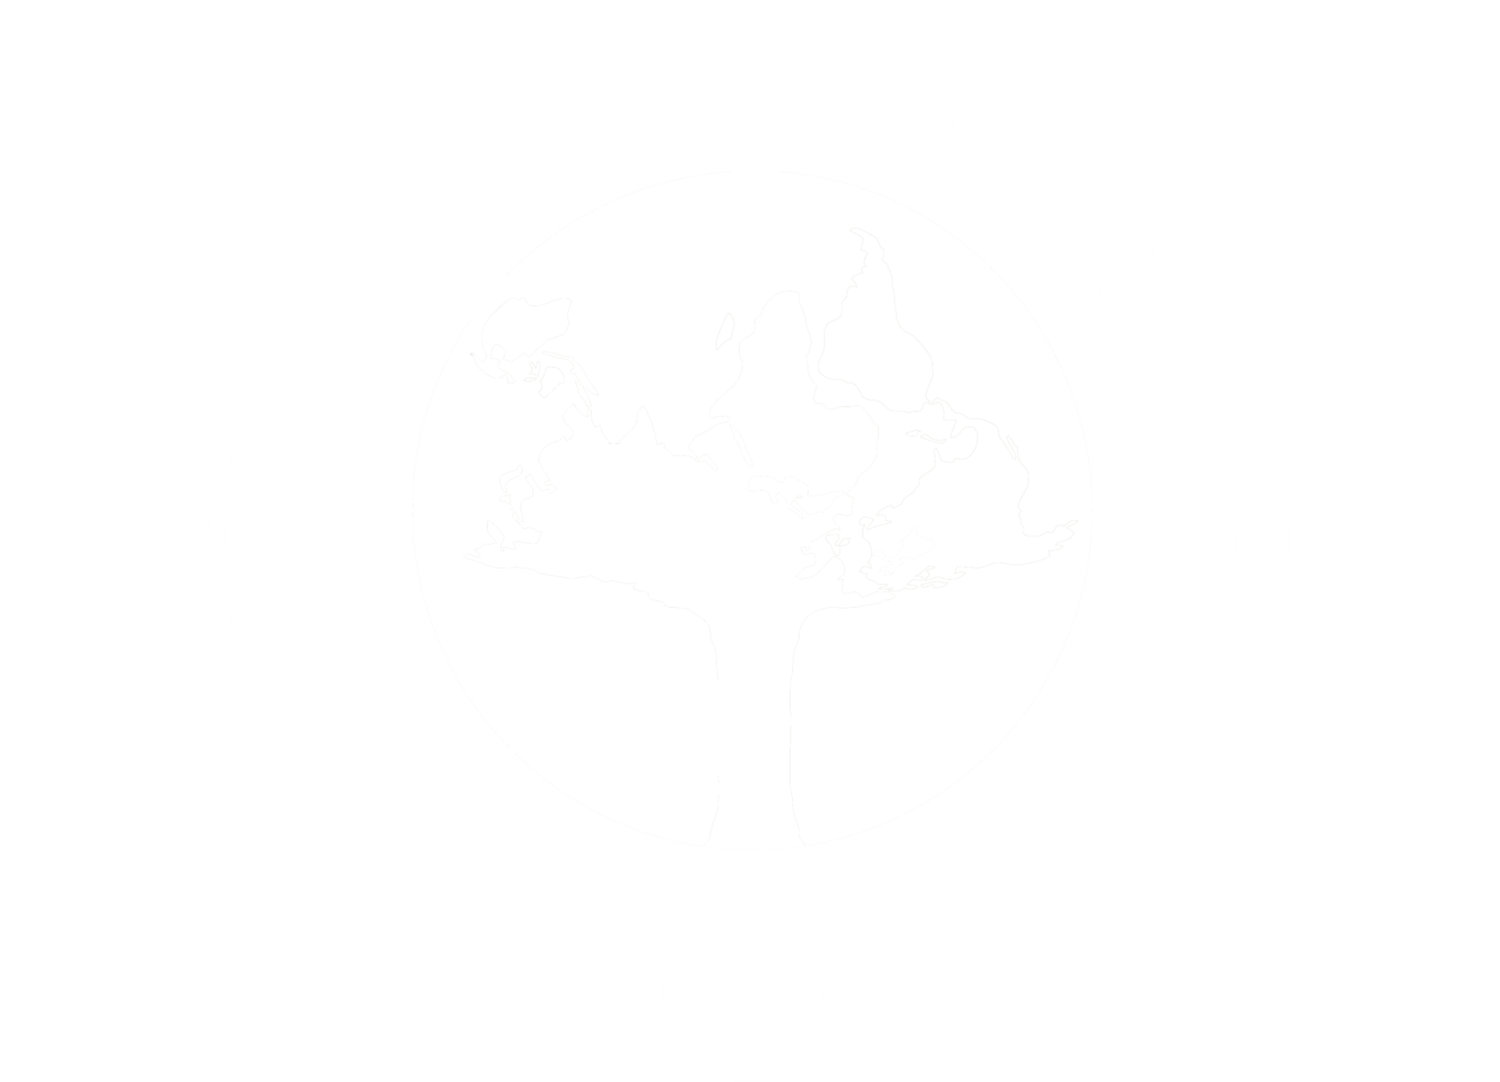 Dundas Valley Montessori School